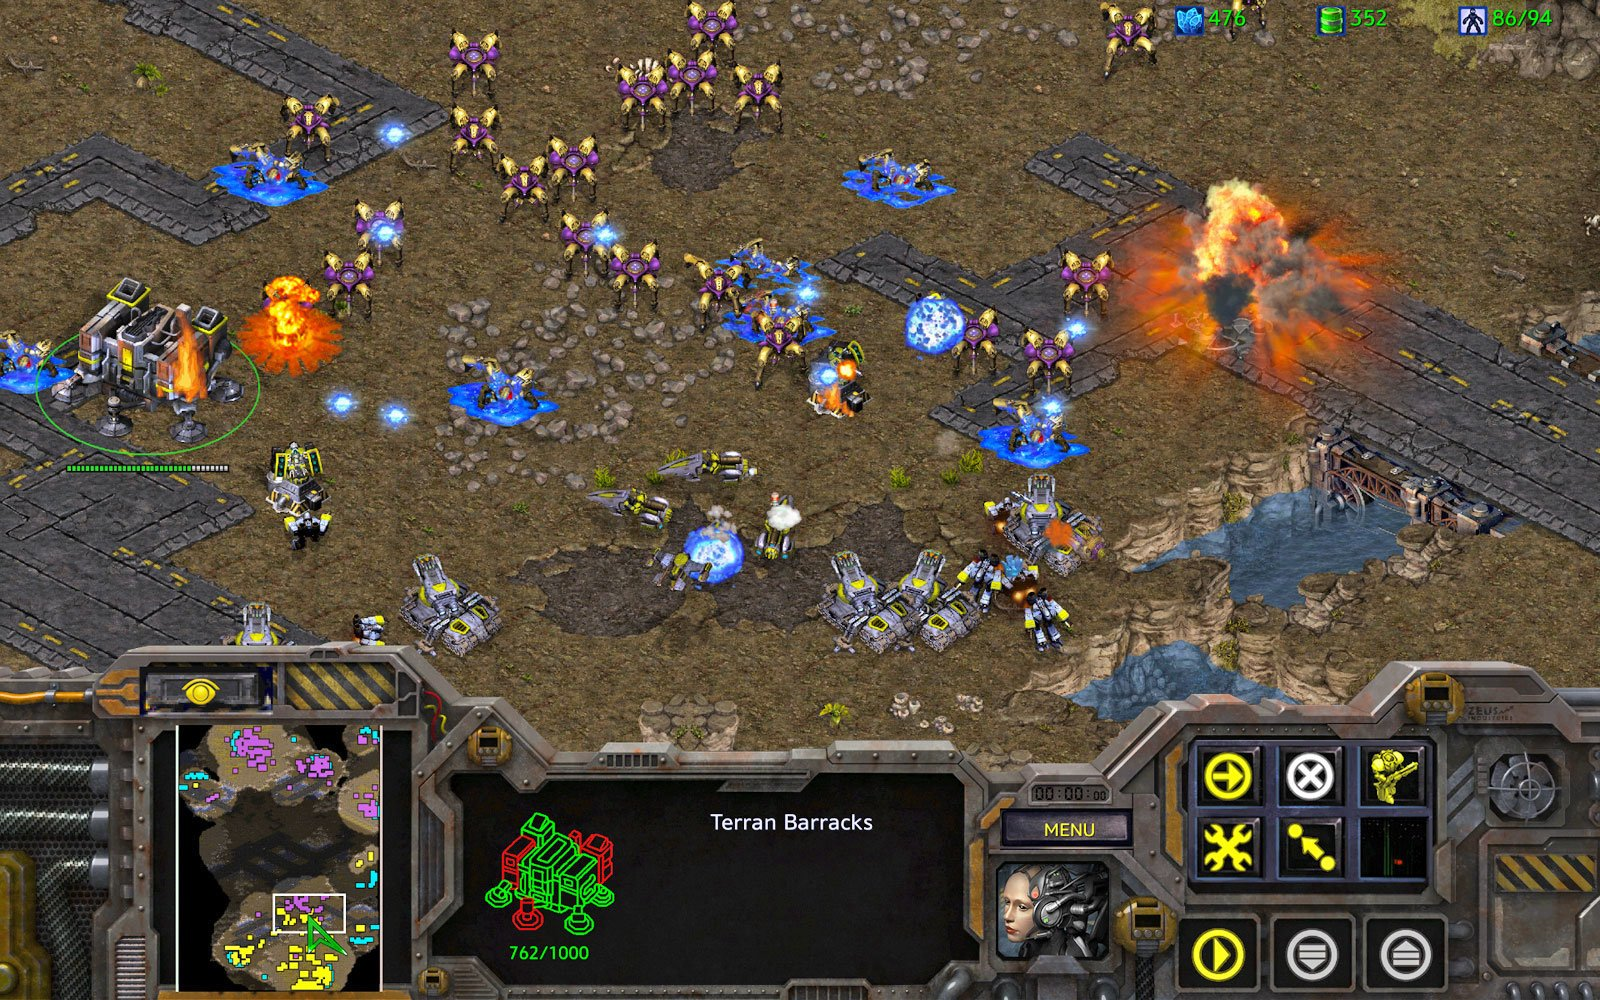 Prepare for the Area 51 raid by playing a StarCraft game with StarCraft touted as one of the best RTS franchises of all-time.